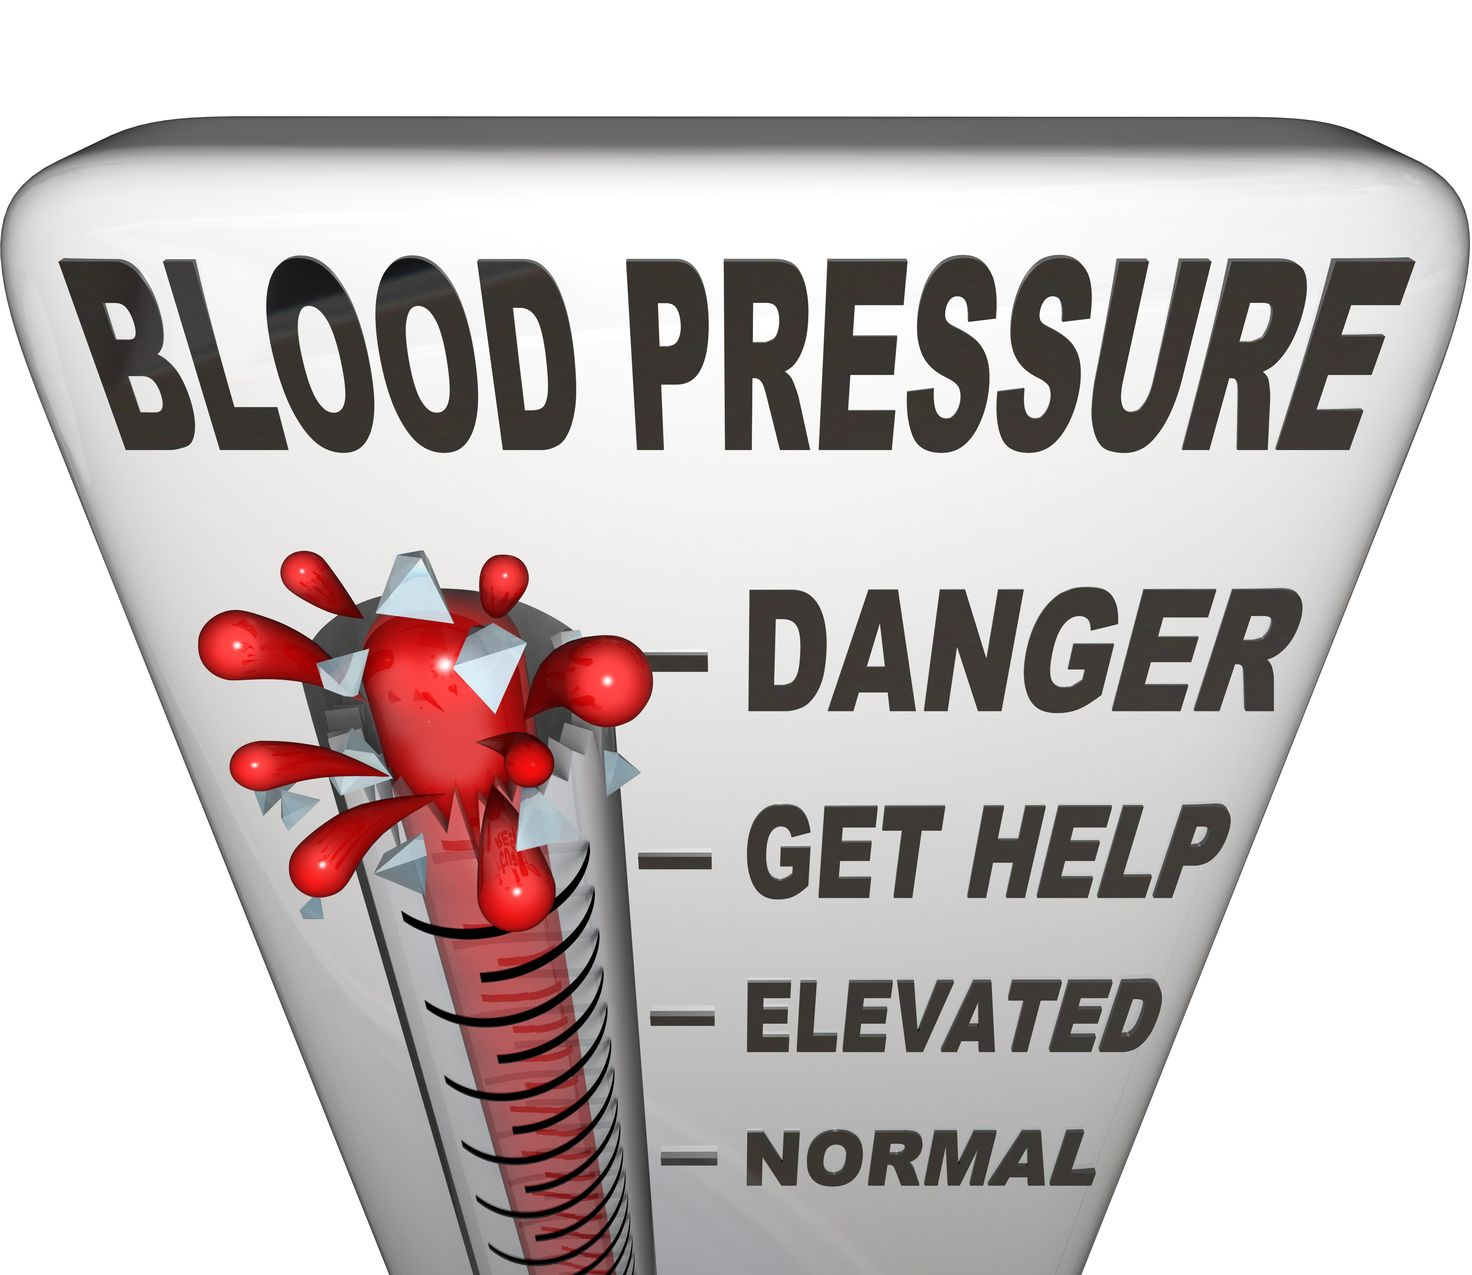 Reasons For High Blood Pressure  https://www.info-on-high-blood-pressure.com/reasonsforhighbloodpressure.html